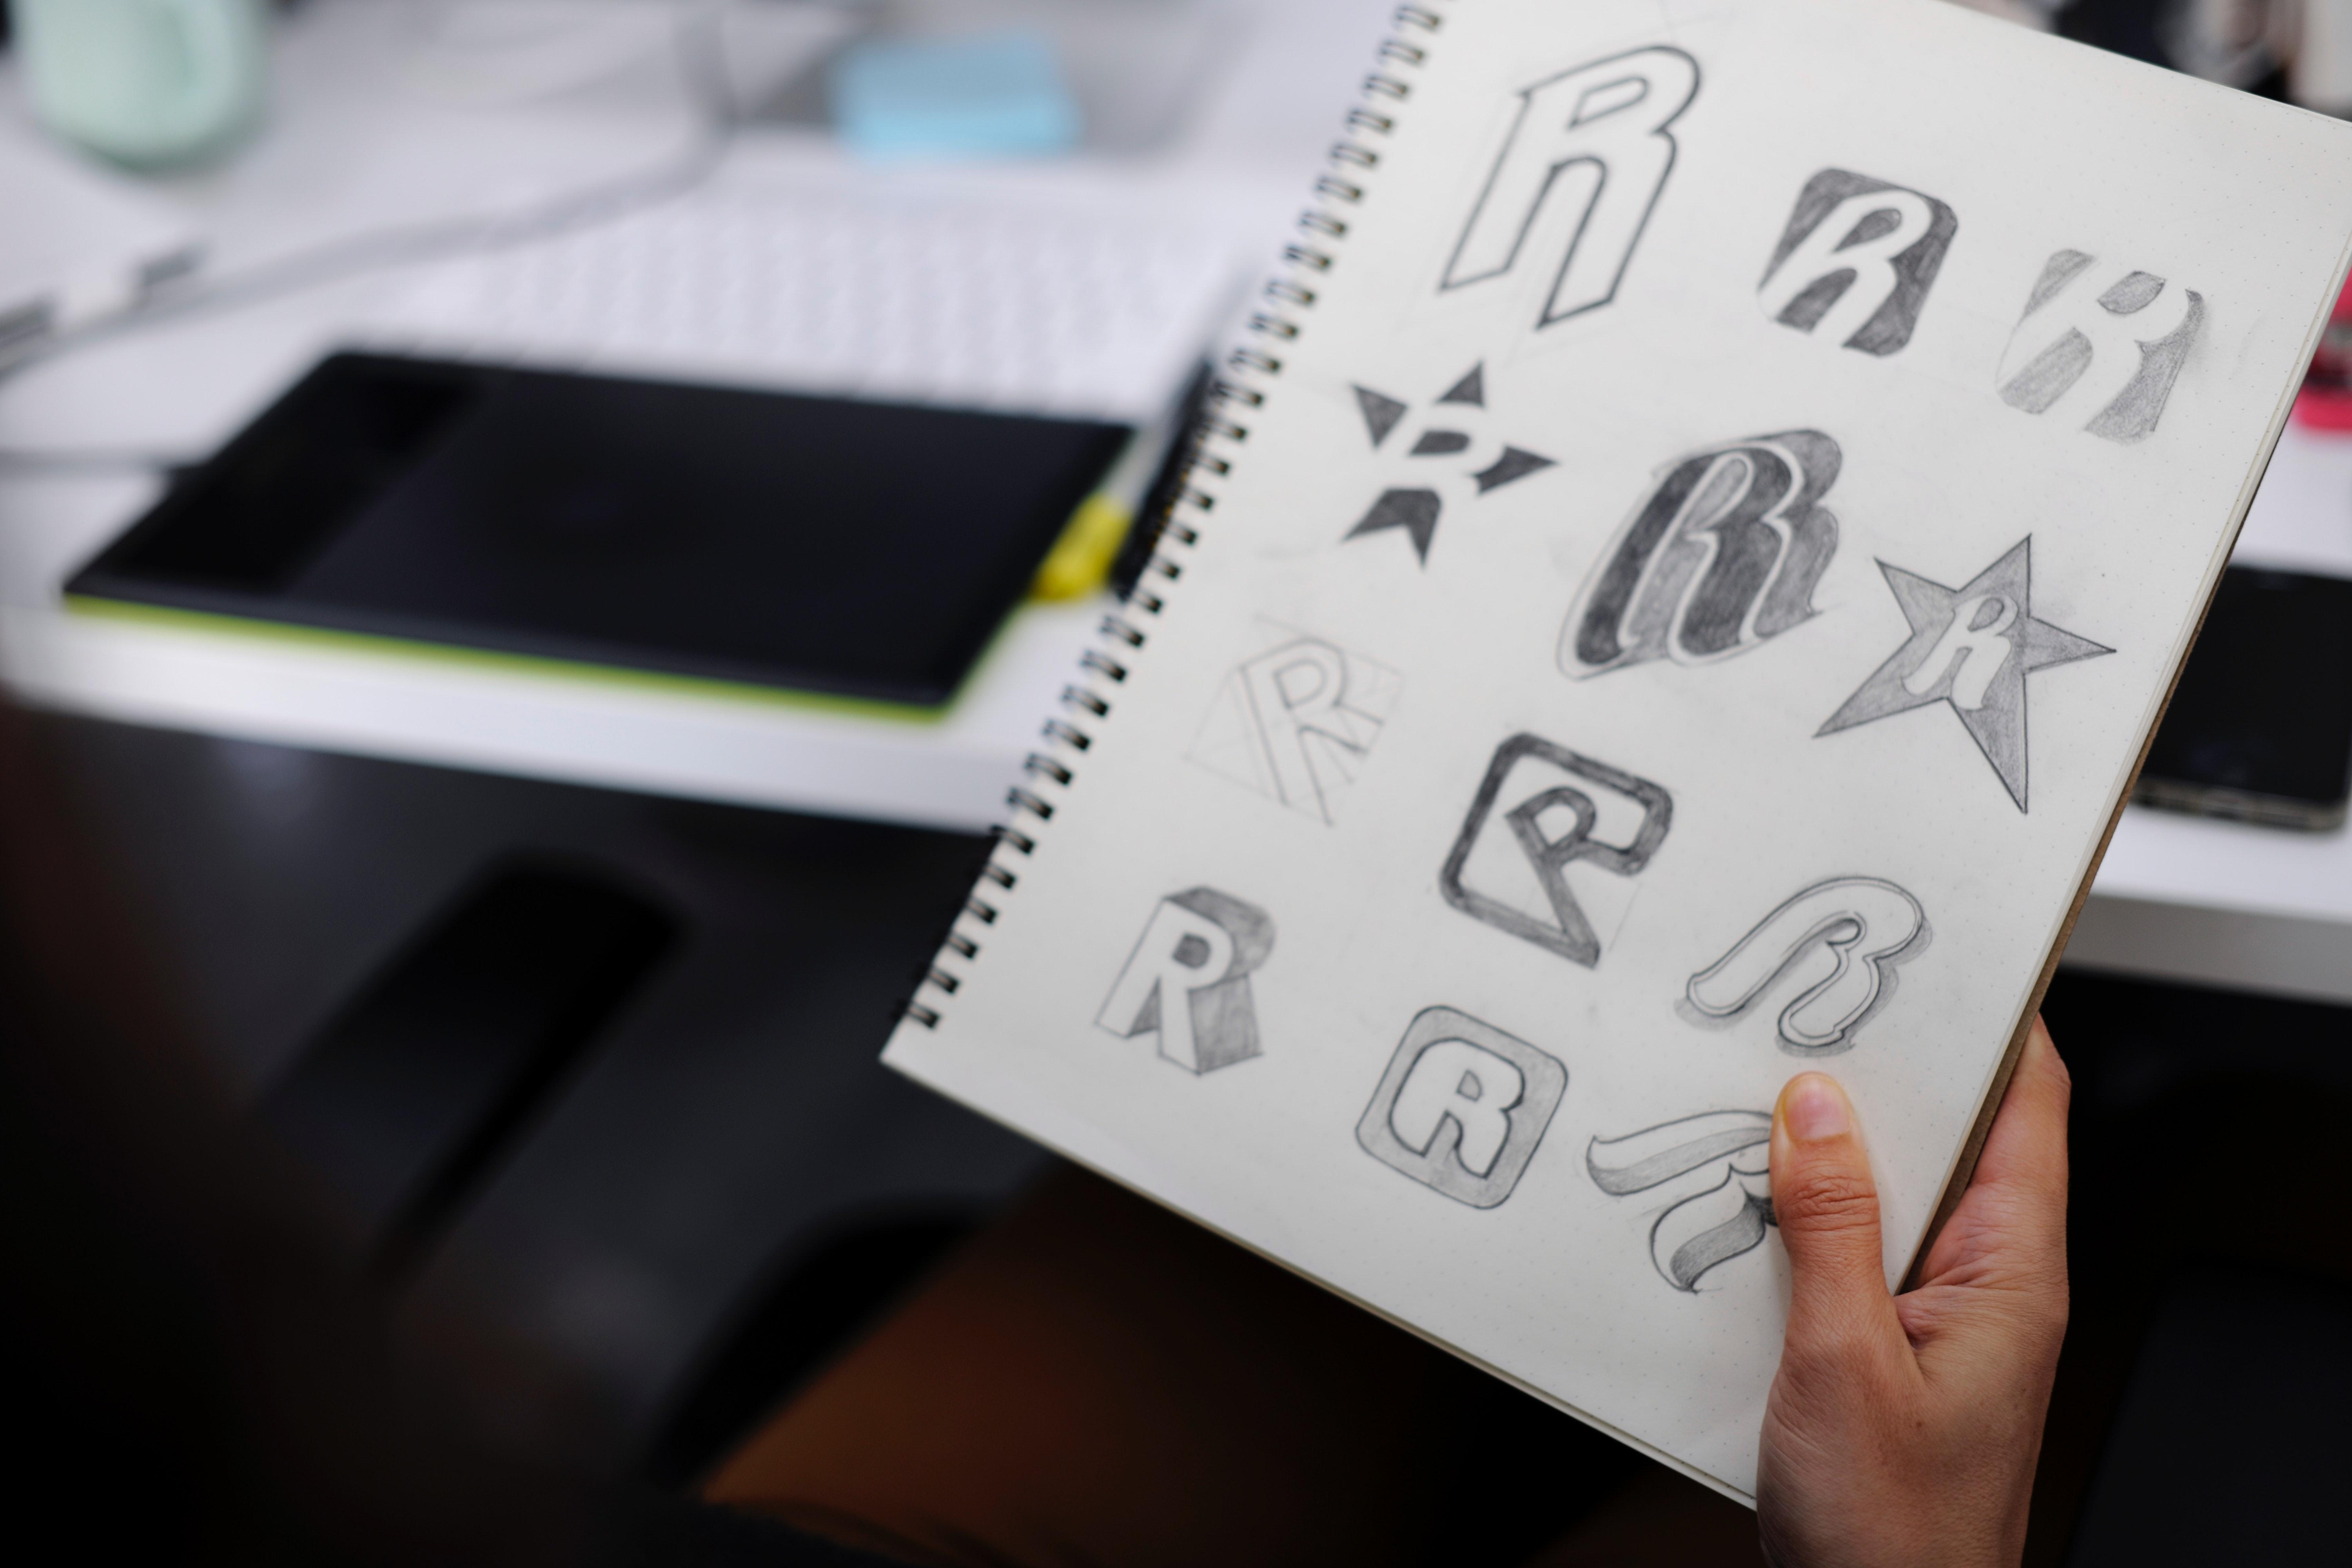 10 Best Fonts For Business Logo Design in 2020